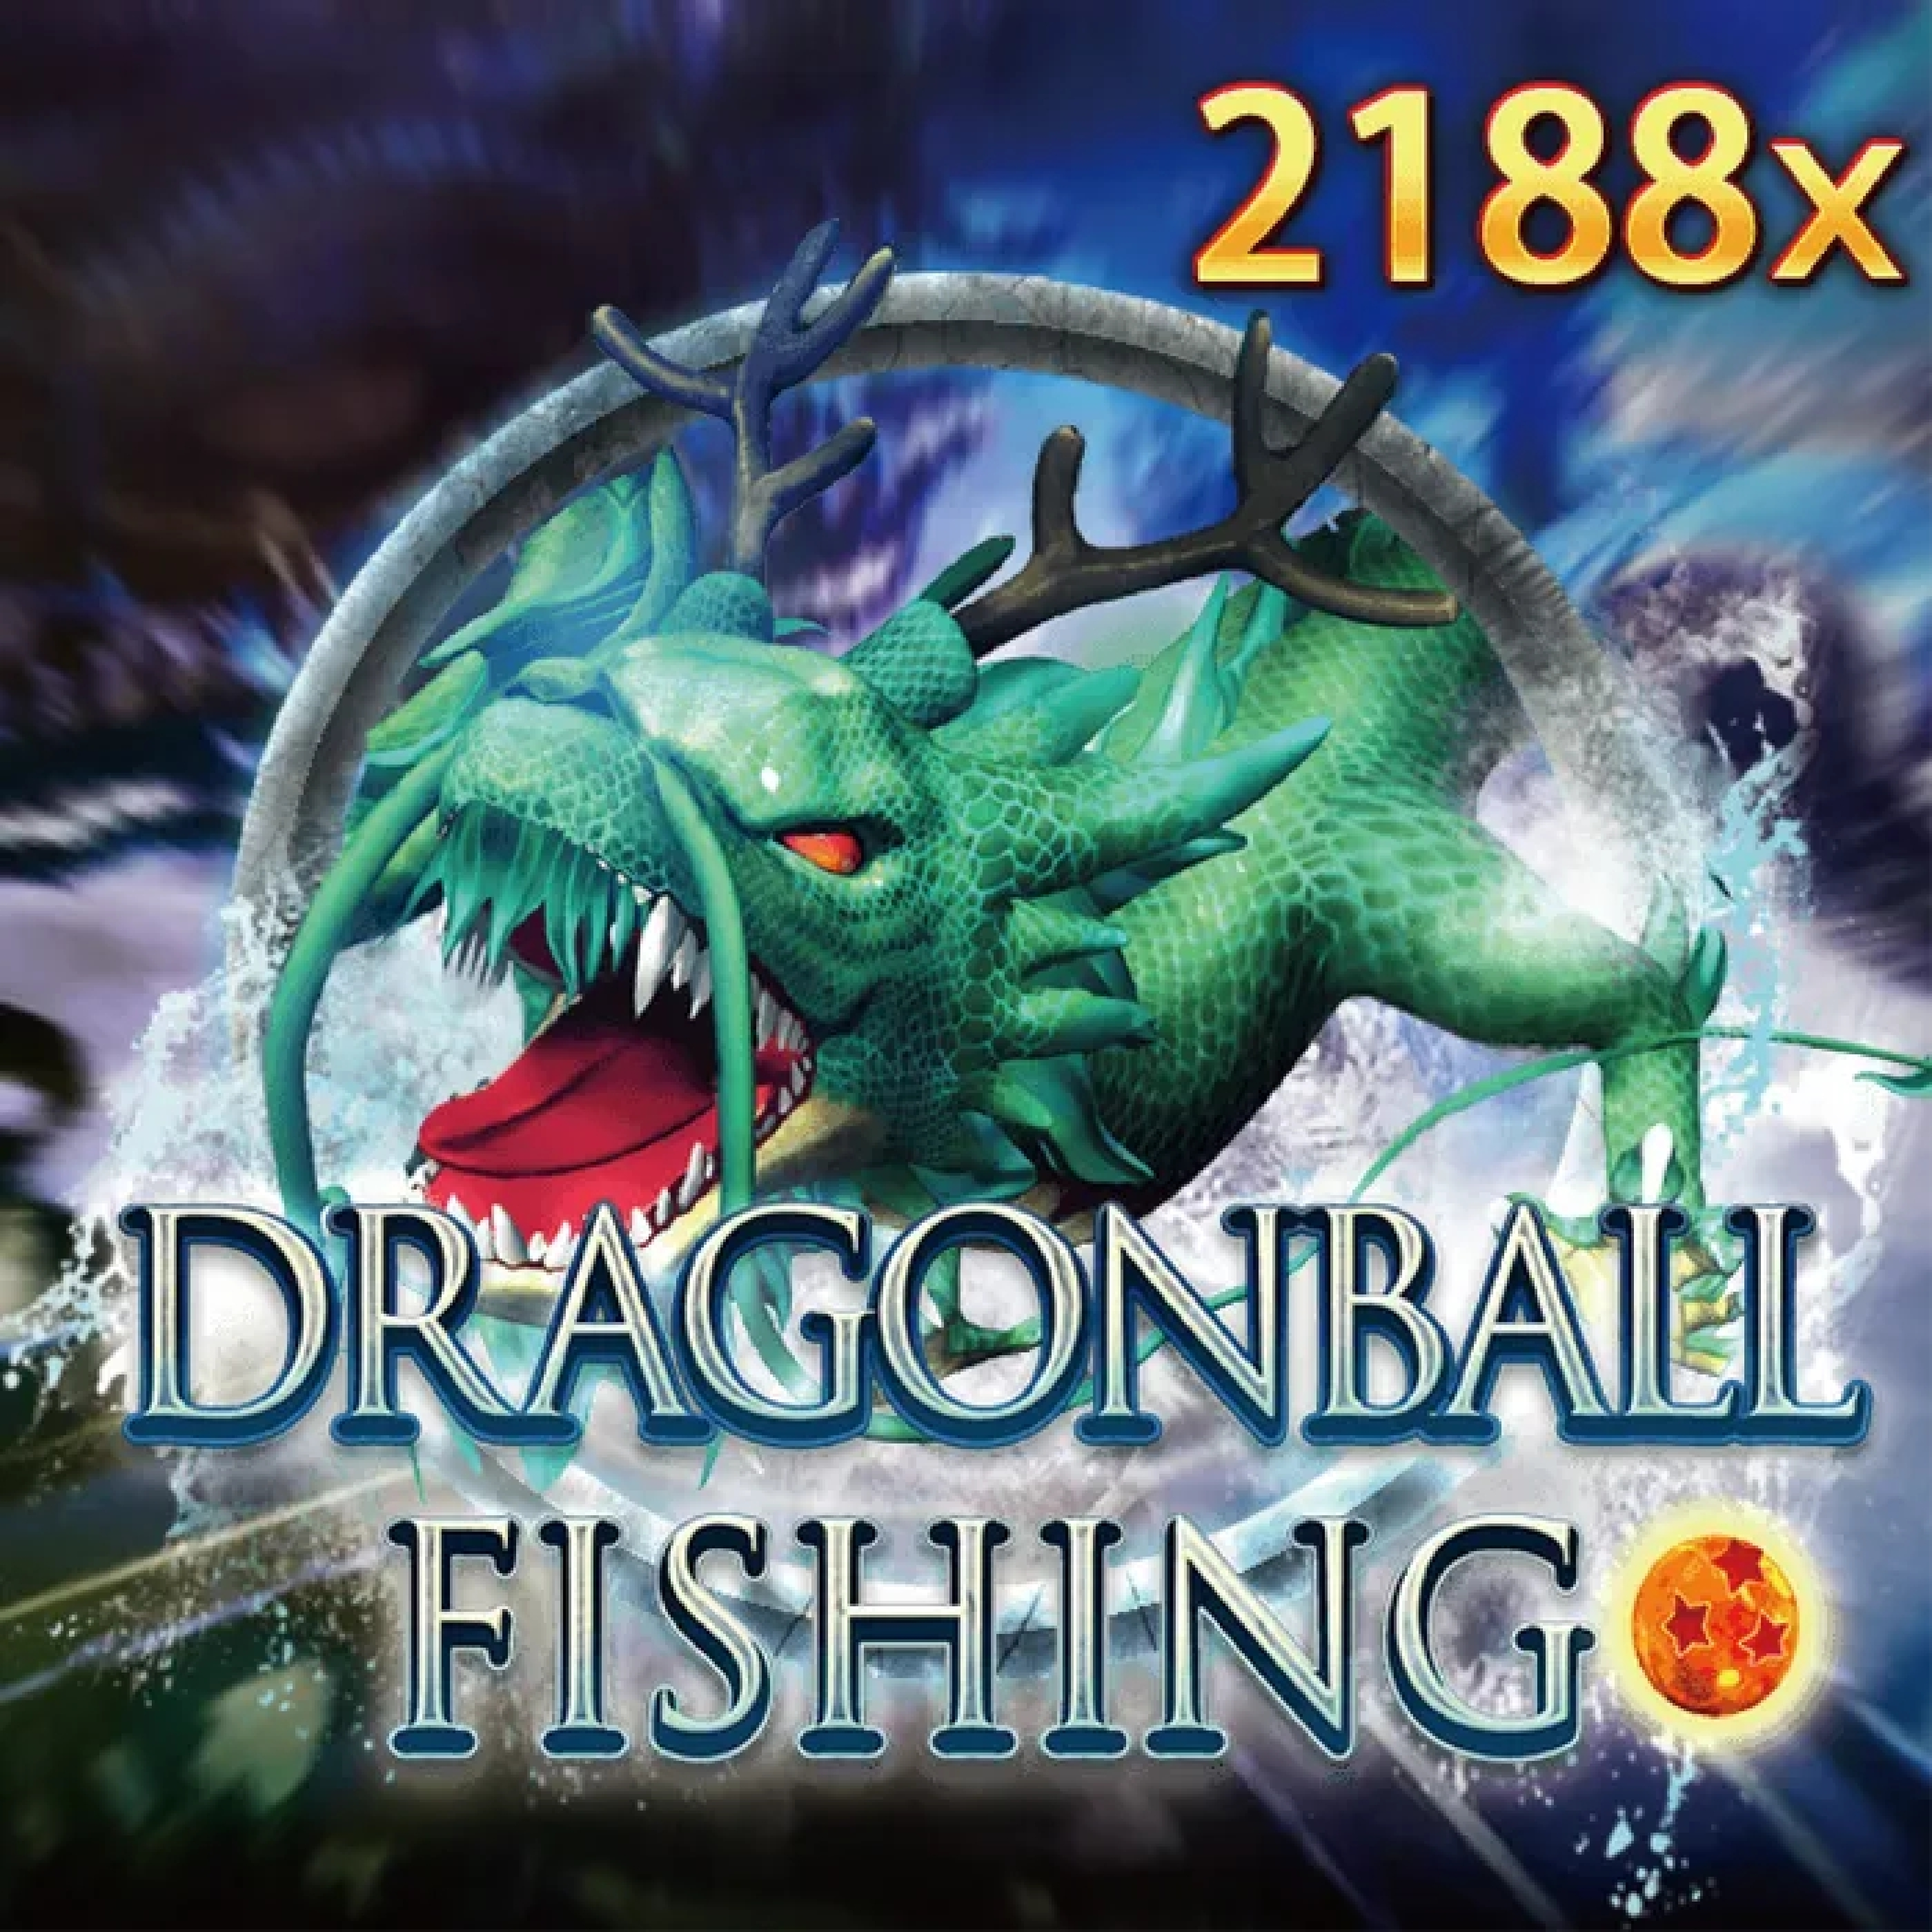 Se Dragonball Fishing Online Slot Demo Game, Iconic Gaming